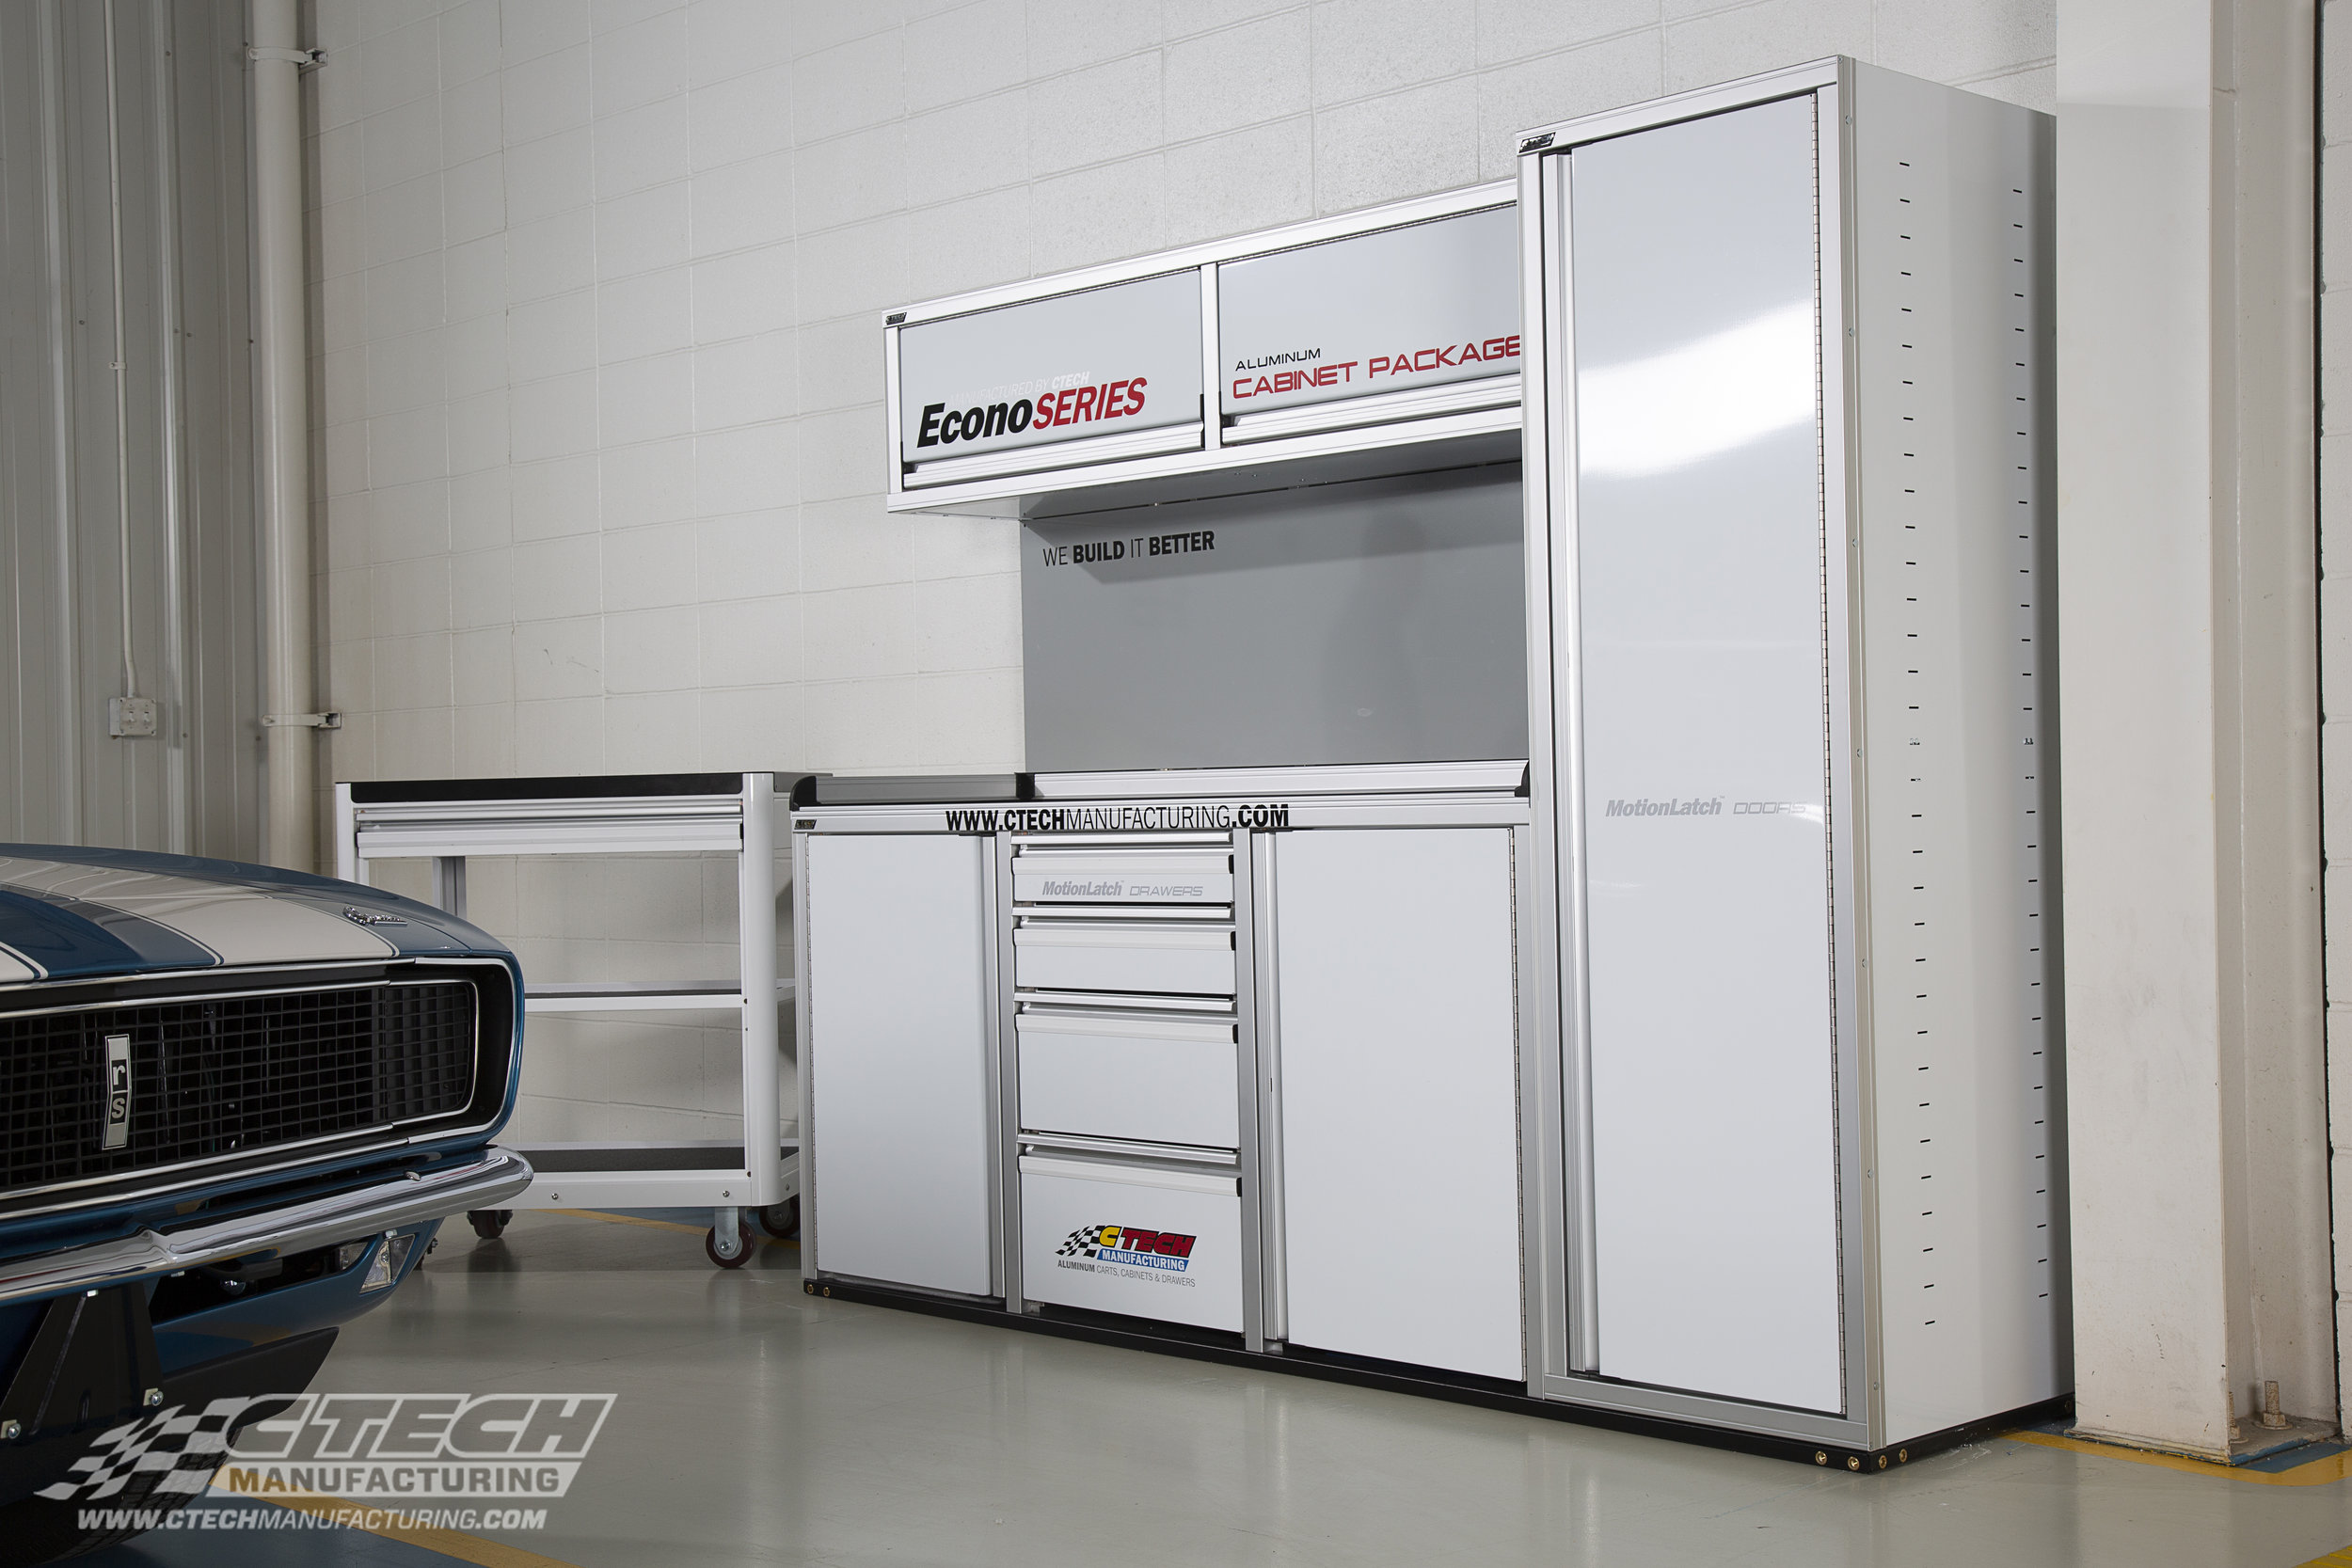 Adding a lightweight cabinet system from CTECH is a great way to easily add more storage and functionality to any size trailer or garage space. Standard Econo Series cabinet packages offer innovative features like MotionLatch and GasketLoc technology at our most affordable price. Complete the setup with a CTECH Service Cart! BOM Q31477/Q35755